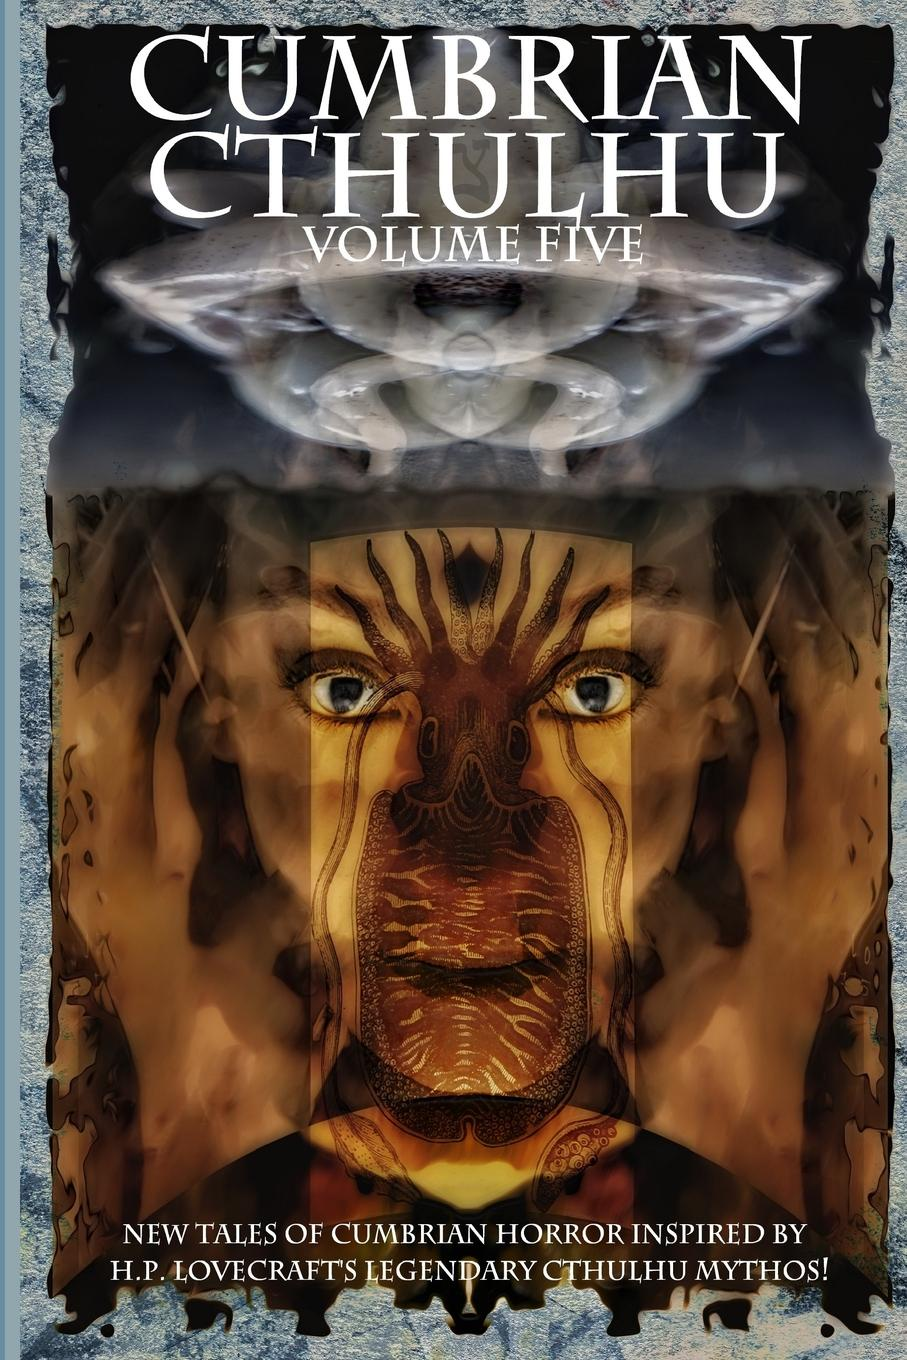 Andrew McGuigan Cumbrian Cthulhu Volume Five five tales